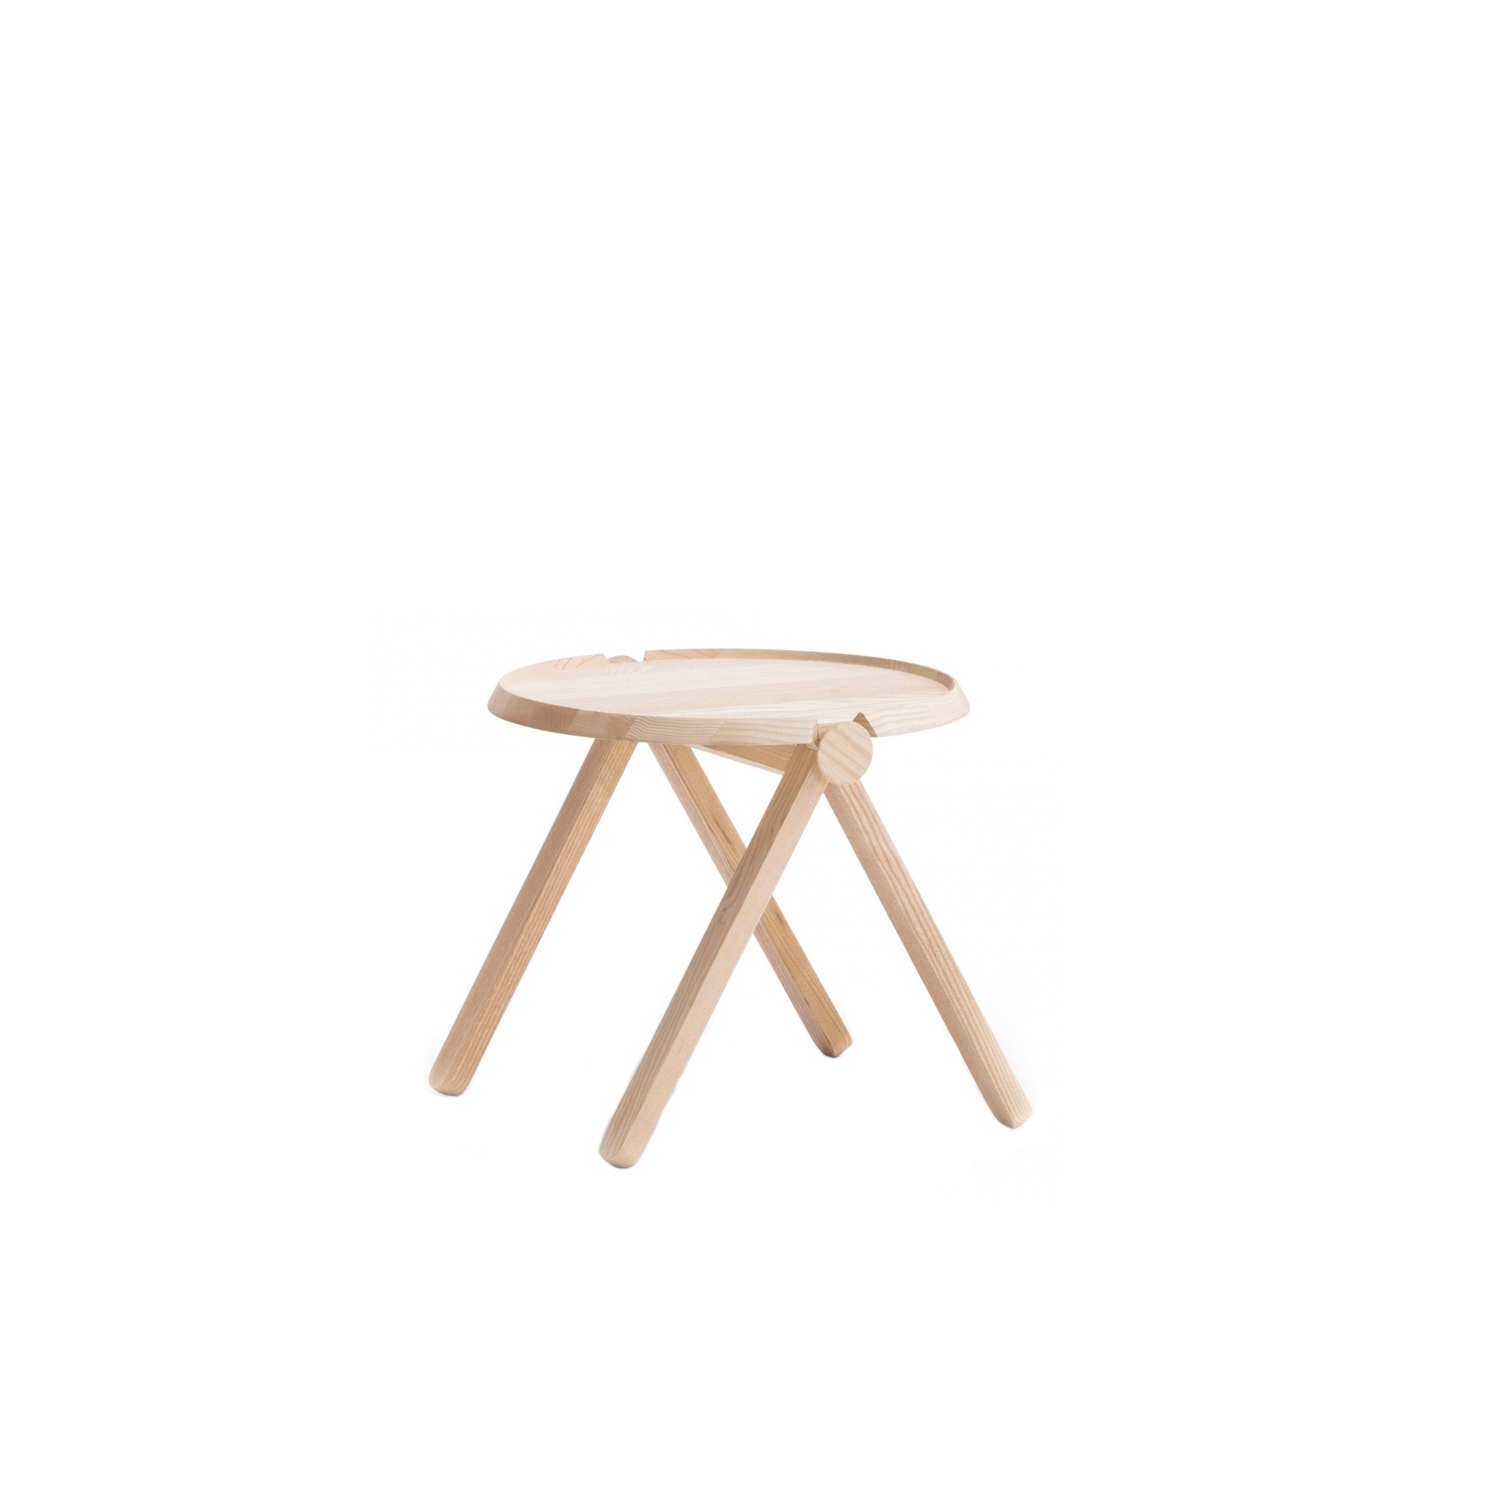 Lilliput Side Table - <p>Lilliput side tables made of solid or lacquered ashwood, with two contrasting natural wood knobs which are only available in natural Ashwood. These knobs allow Lilliput to be flat-packed for swift and environmentally friendly transport.</p>  | Matter of Stuff